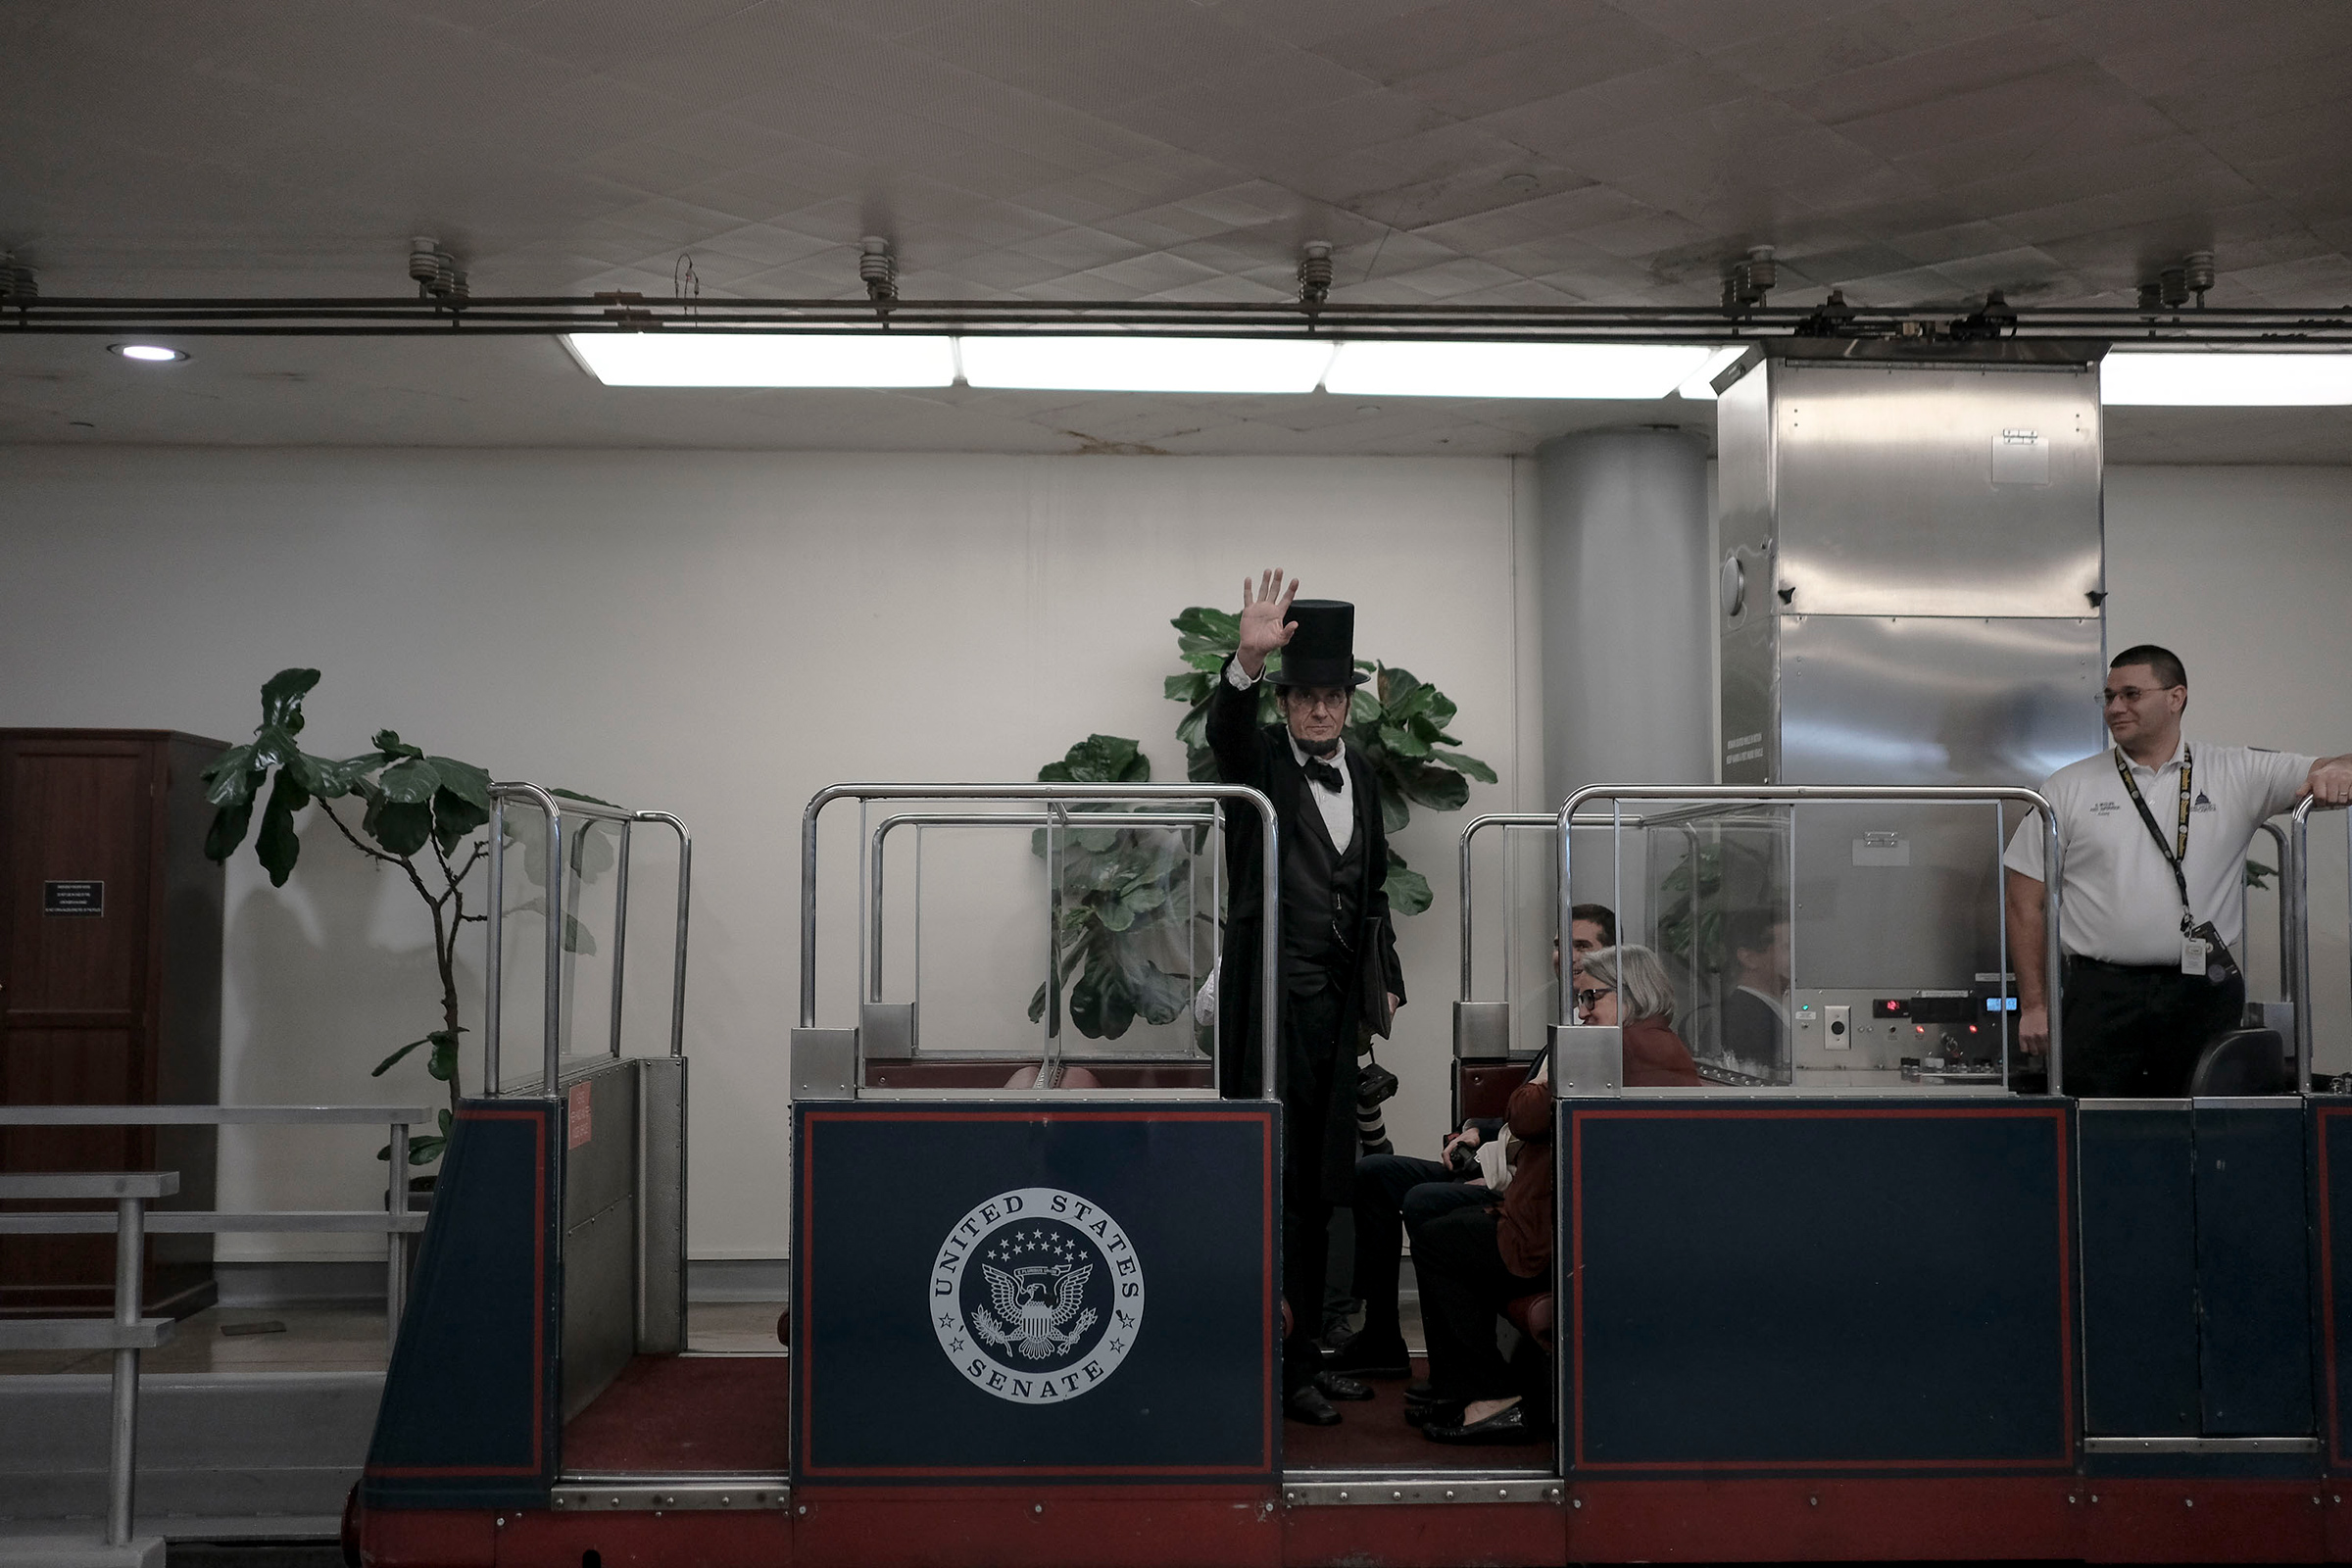 George Buss, a Lincoln impersonator, rides the Senate subway before the impeachment vote at the Capitol in Washington, D.C., on Feb. 5, 2020.